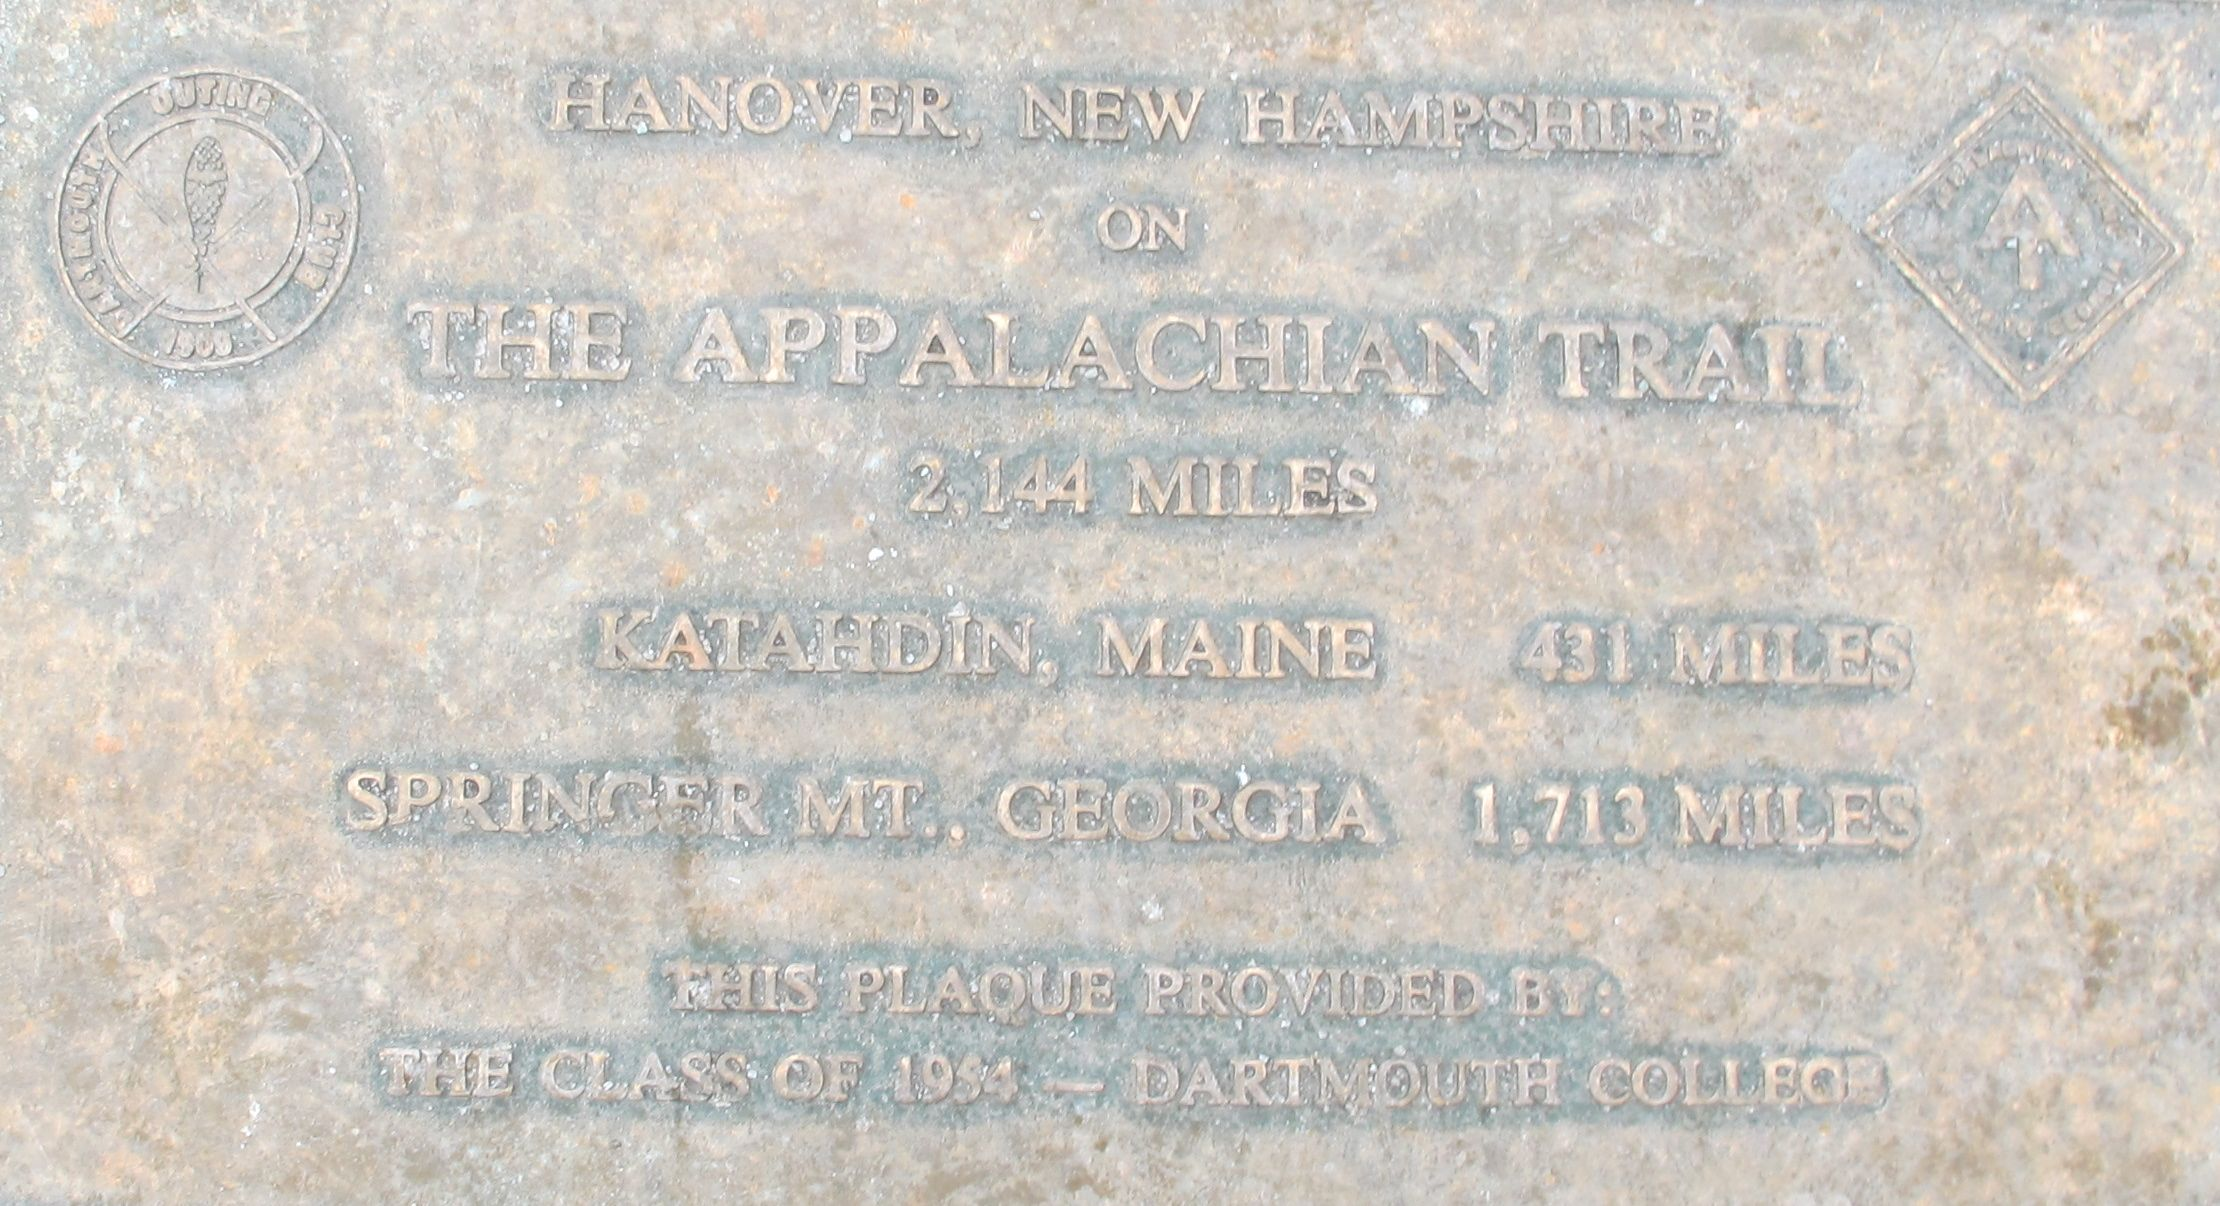 If you walk on Main Street in Hanover, you are also walking on the most gentrified portion of the Appalachian Trail. We chose not to hike the 341 miles to trail's end at Mount Katahdin in Maine.